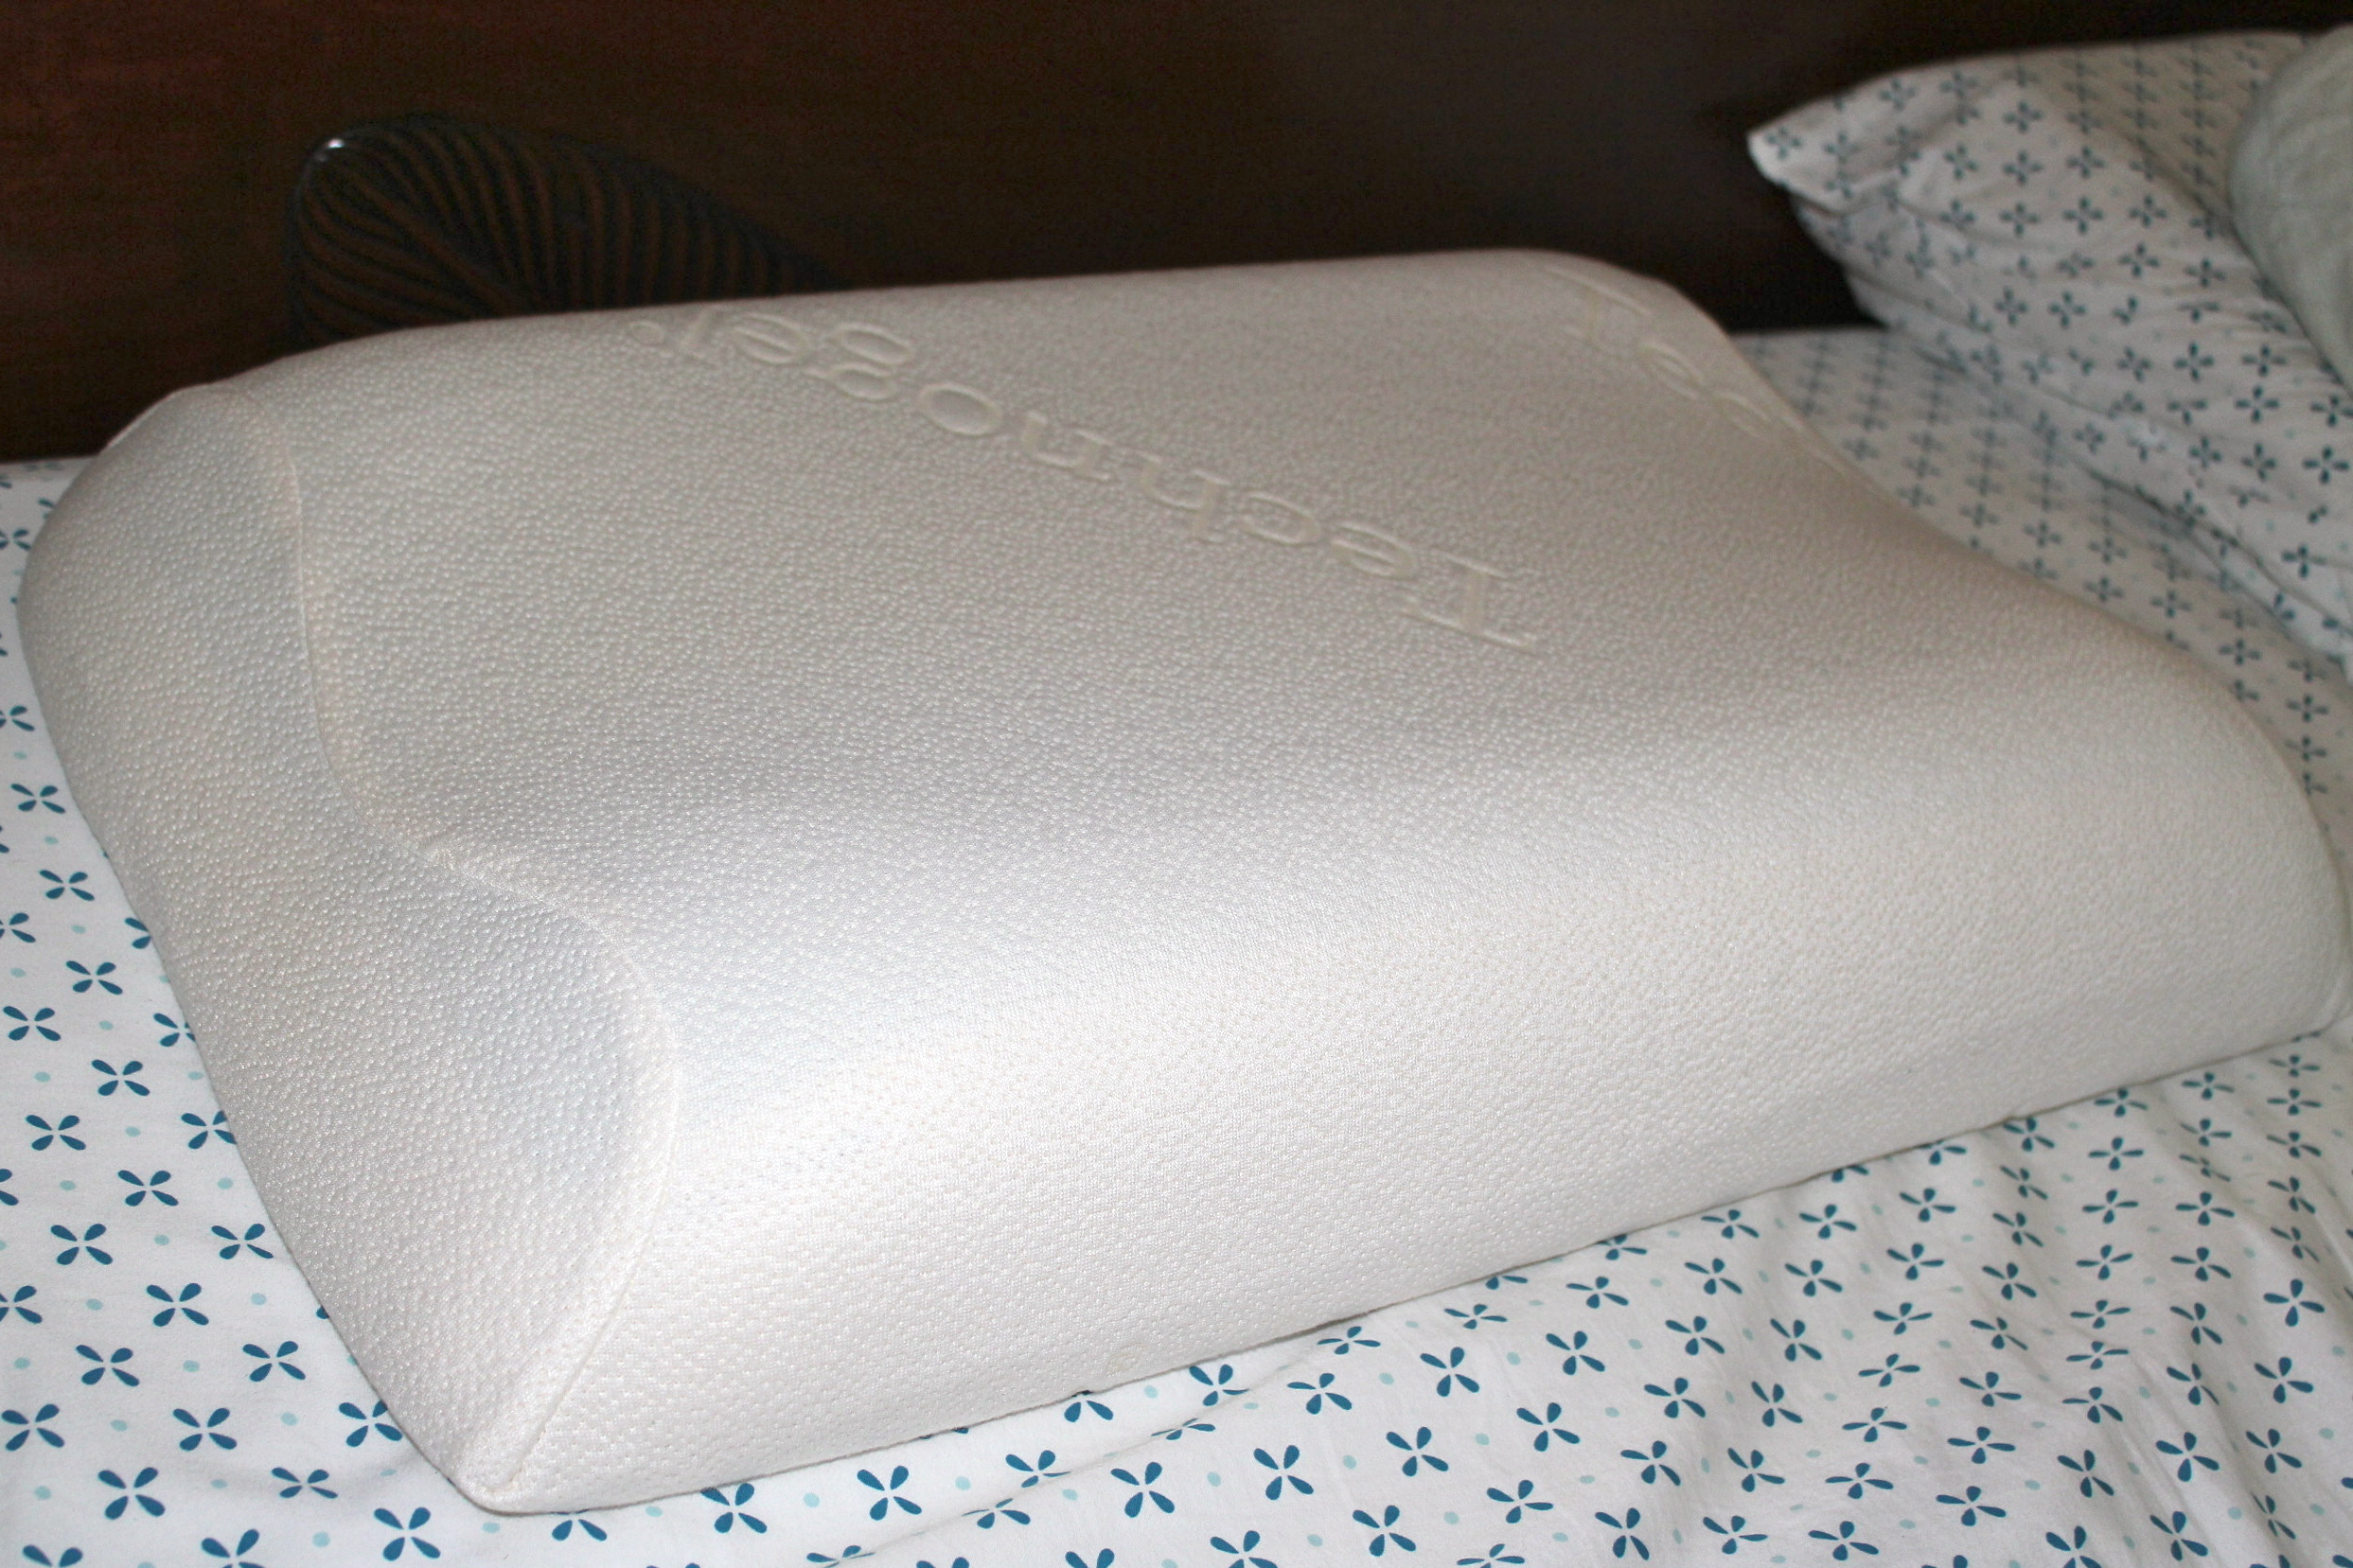 Dr. Scholls Technogel Anatomic Pillow Review